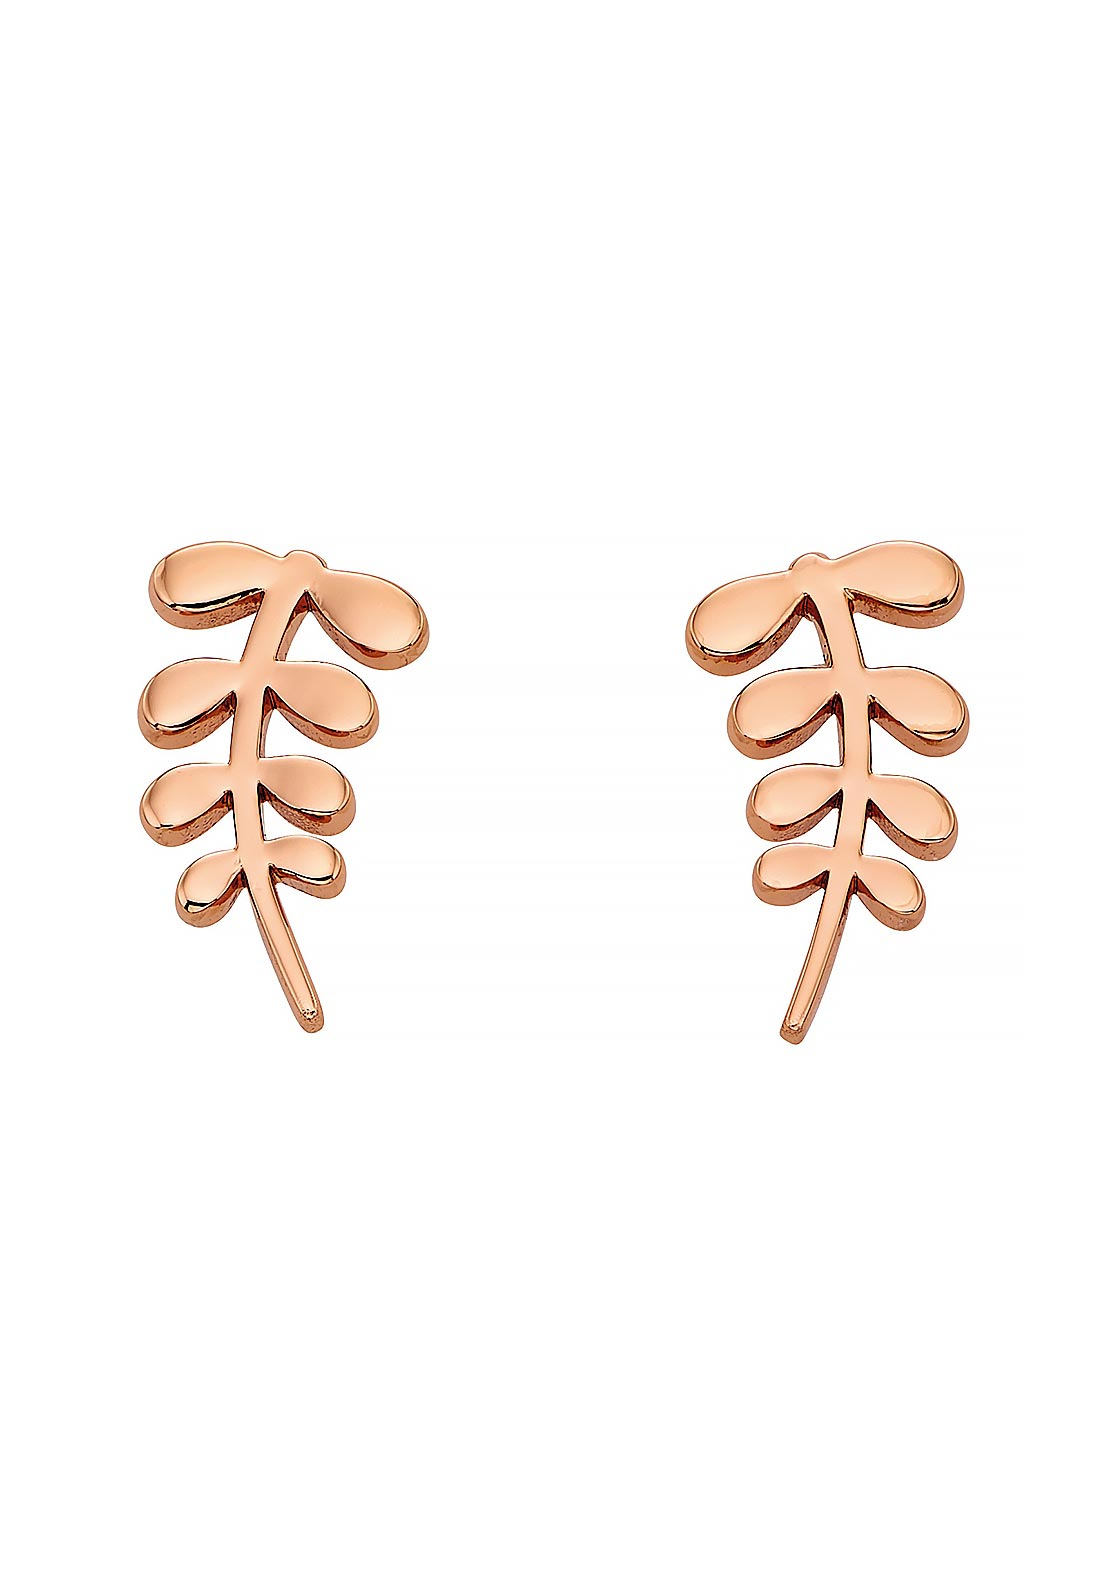 Orla Kiely Stem Stud Earrings, Rose Gold